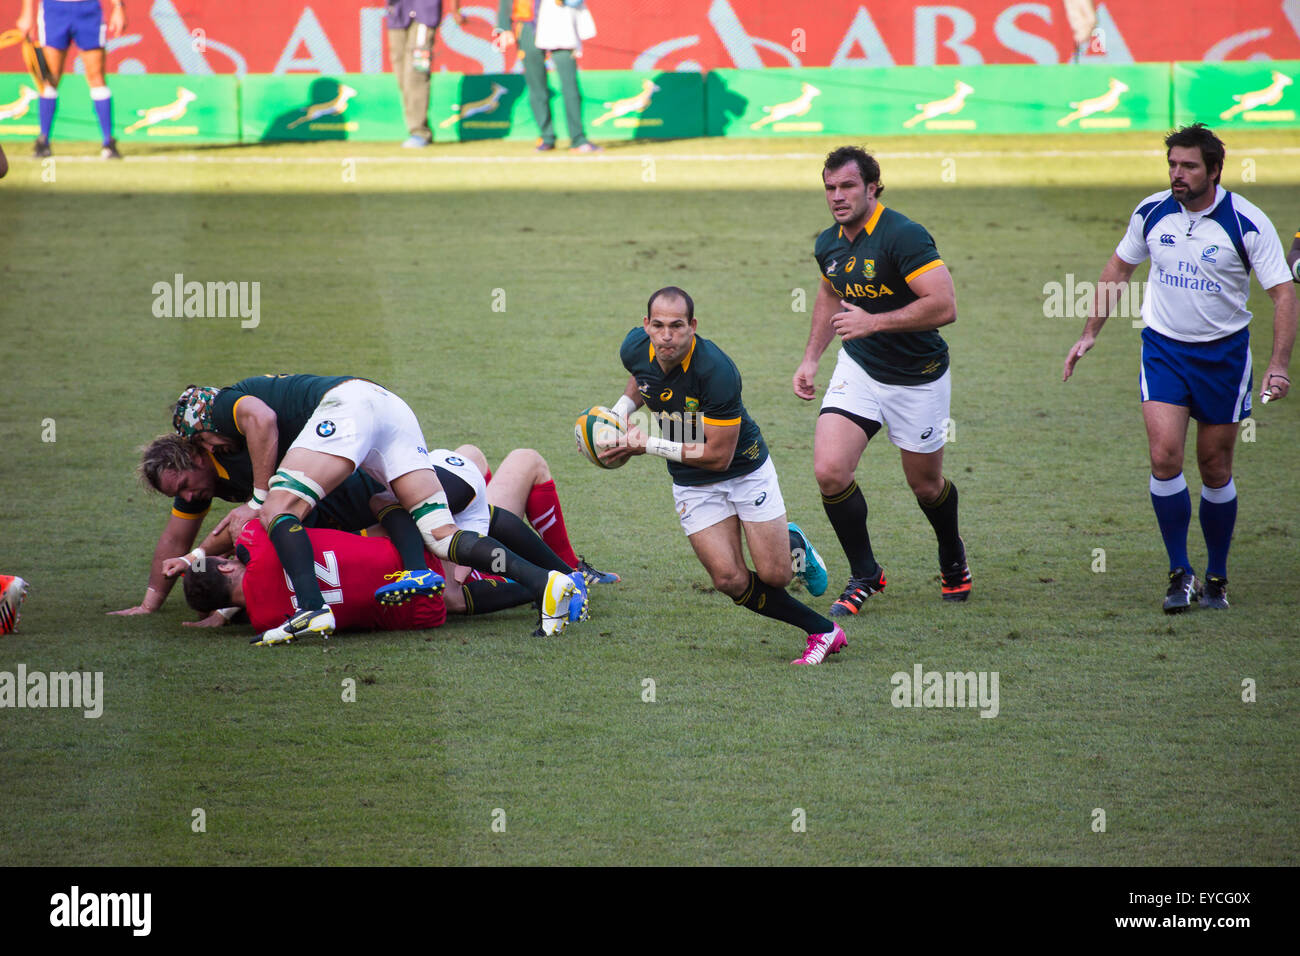 Fourie du Preez as scrum half, Bismarck du Plessis in support with referee Steve Welsh looking on during match against - Stock Image